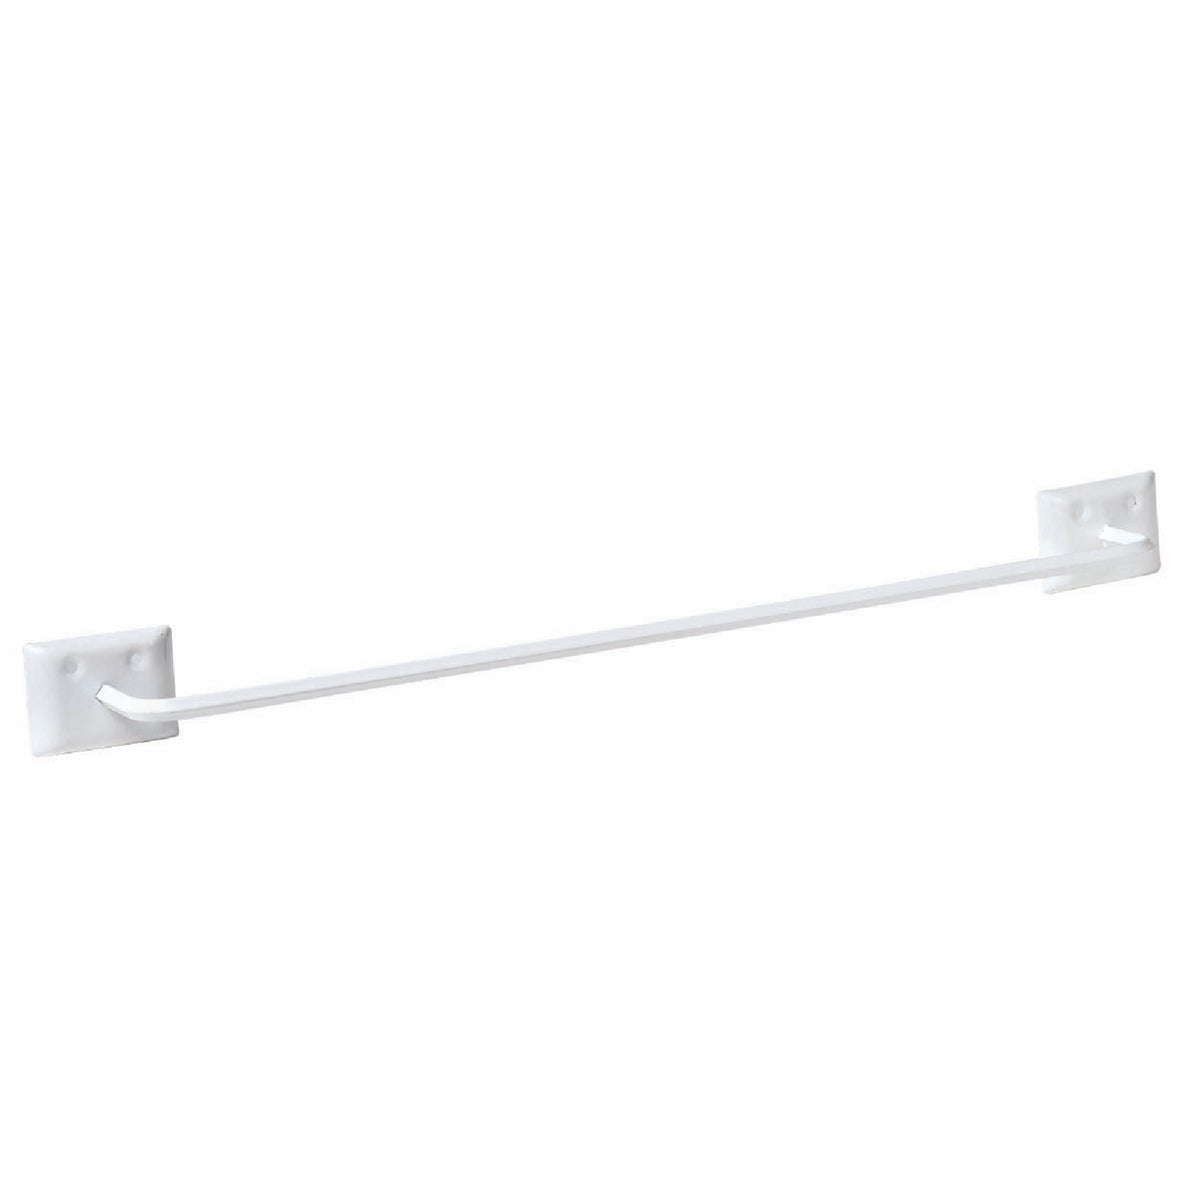 "18"" WHT TOWEL BAR - 48110 by Decko Bath"